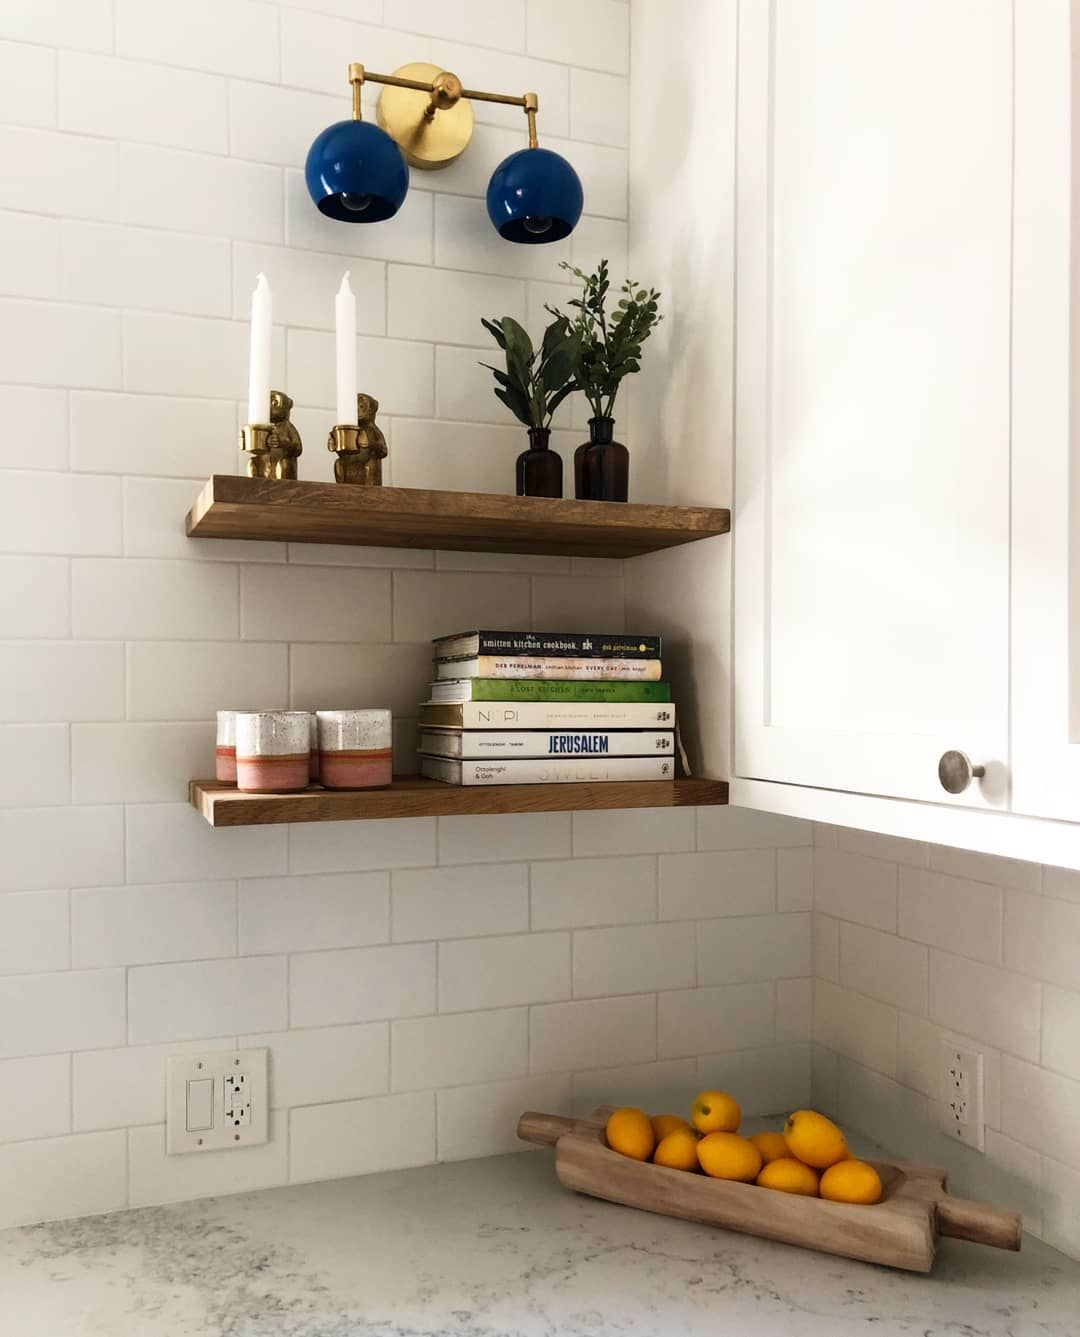 Colorful Wall Sconce In This White Kitchen With Wood Floating